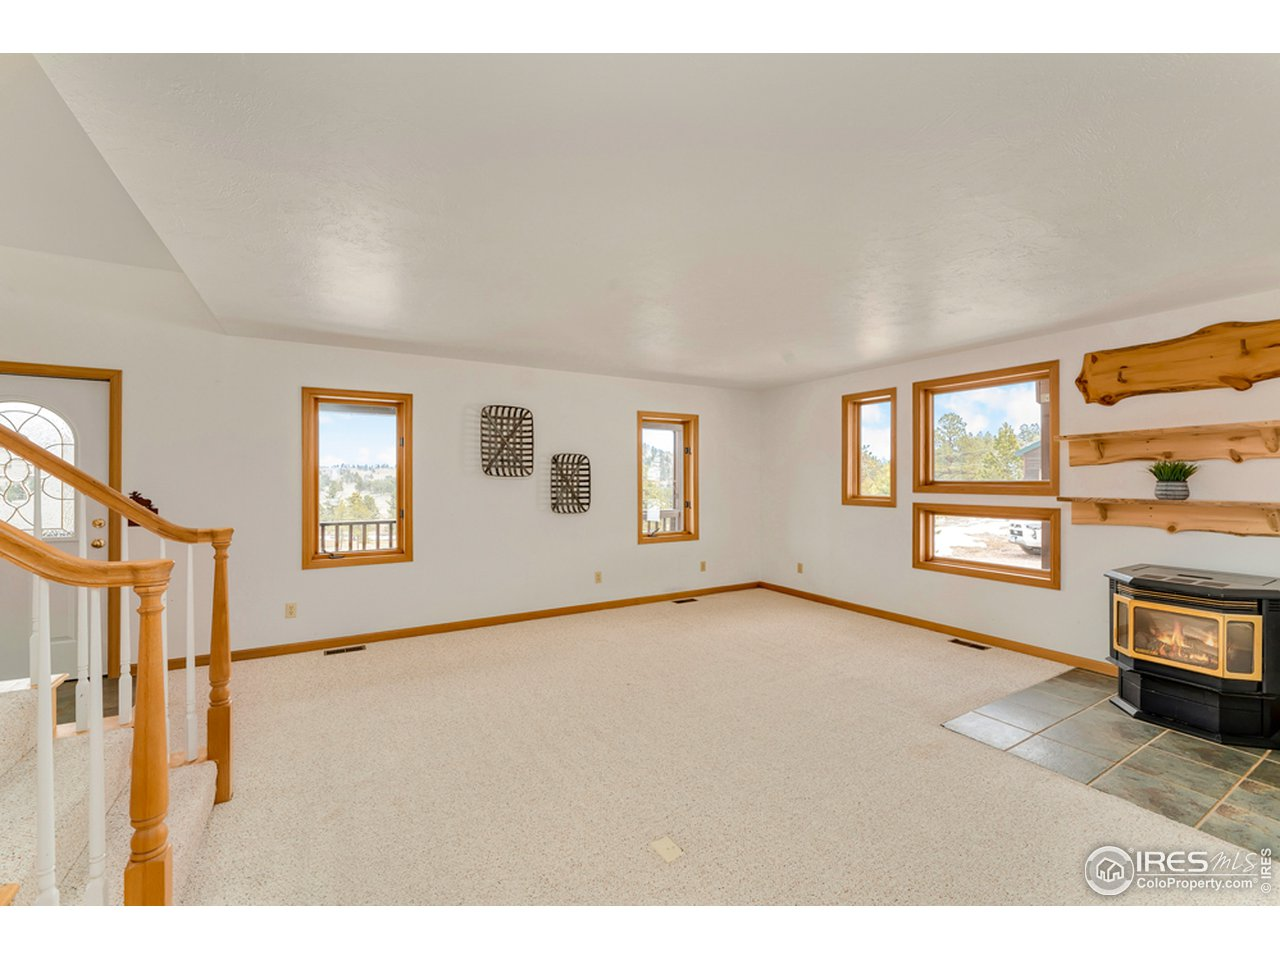 Dining Room, Eat in Kitchen & Pellet Stove